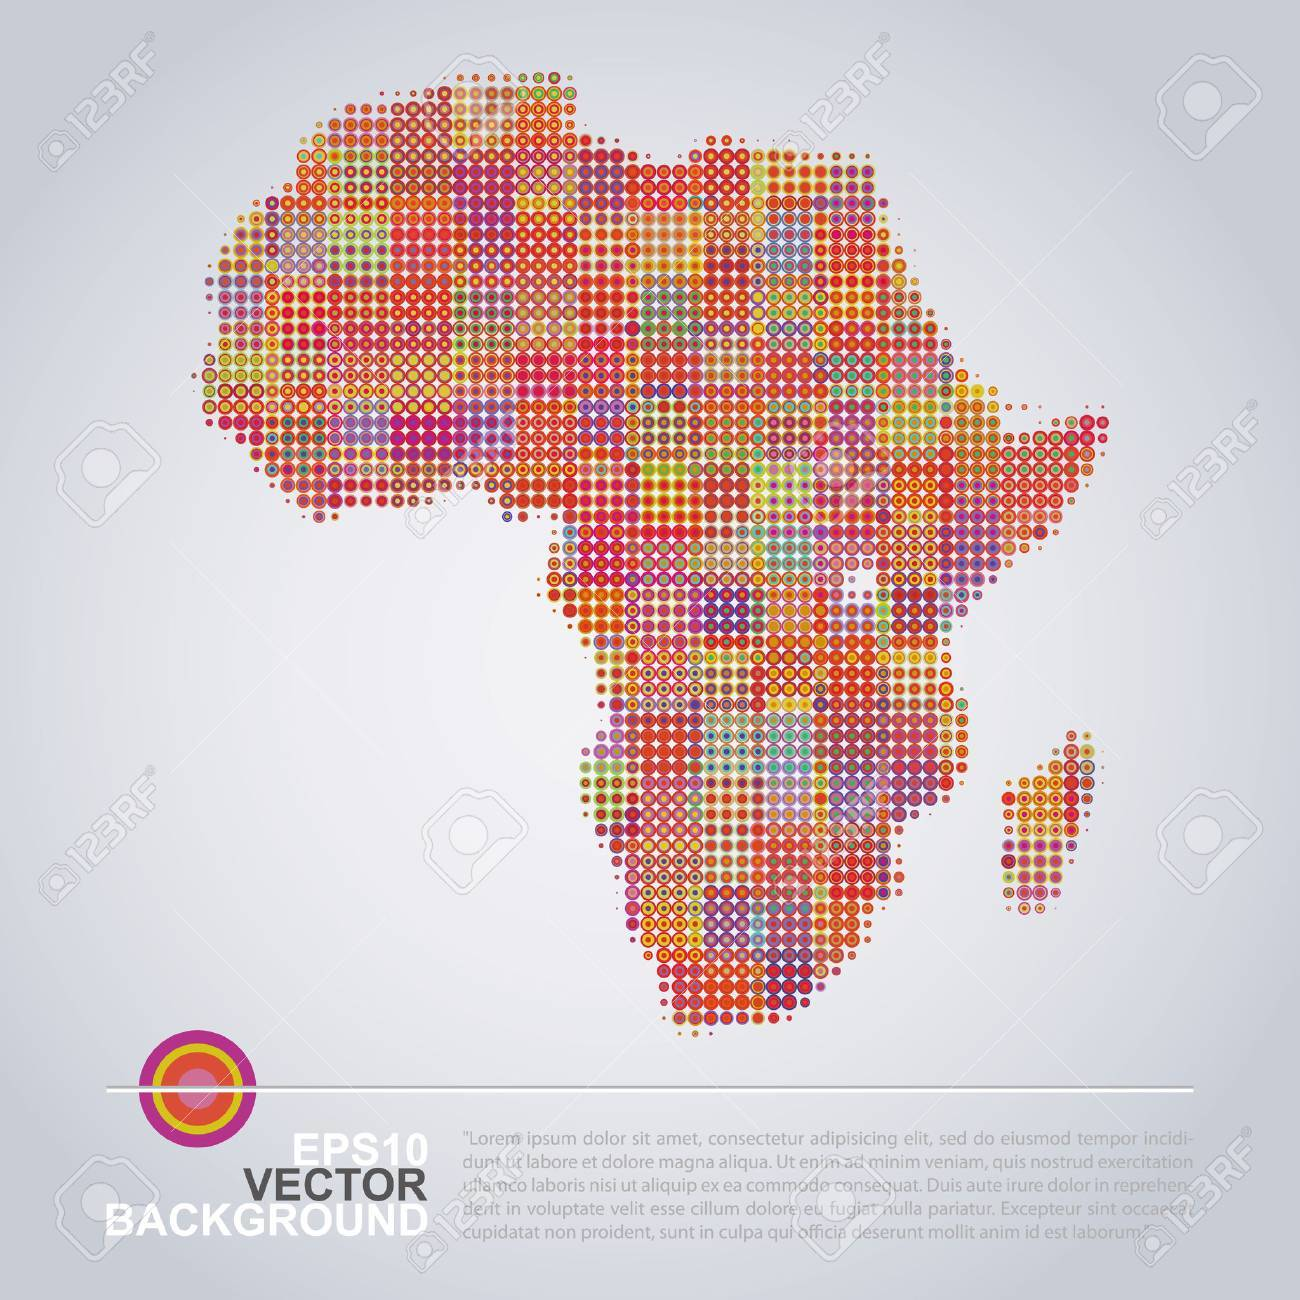 Colorful Map Of Africa.Dotted Map Design Colorful Map Of Africa